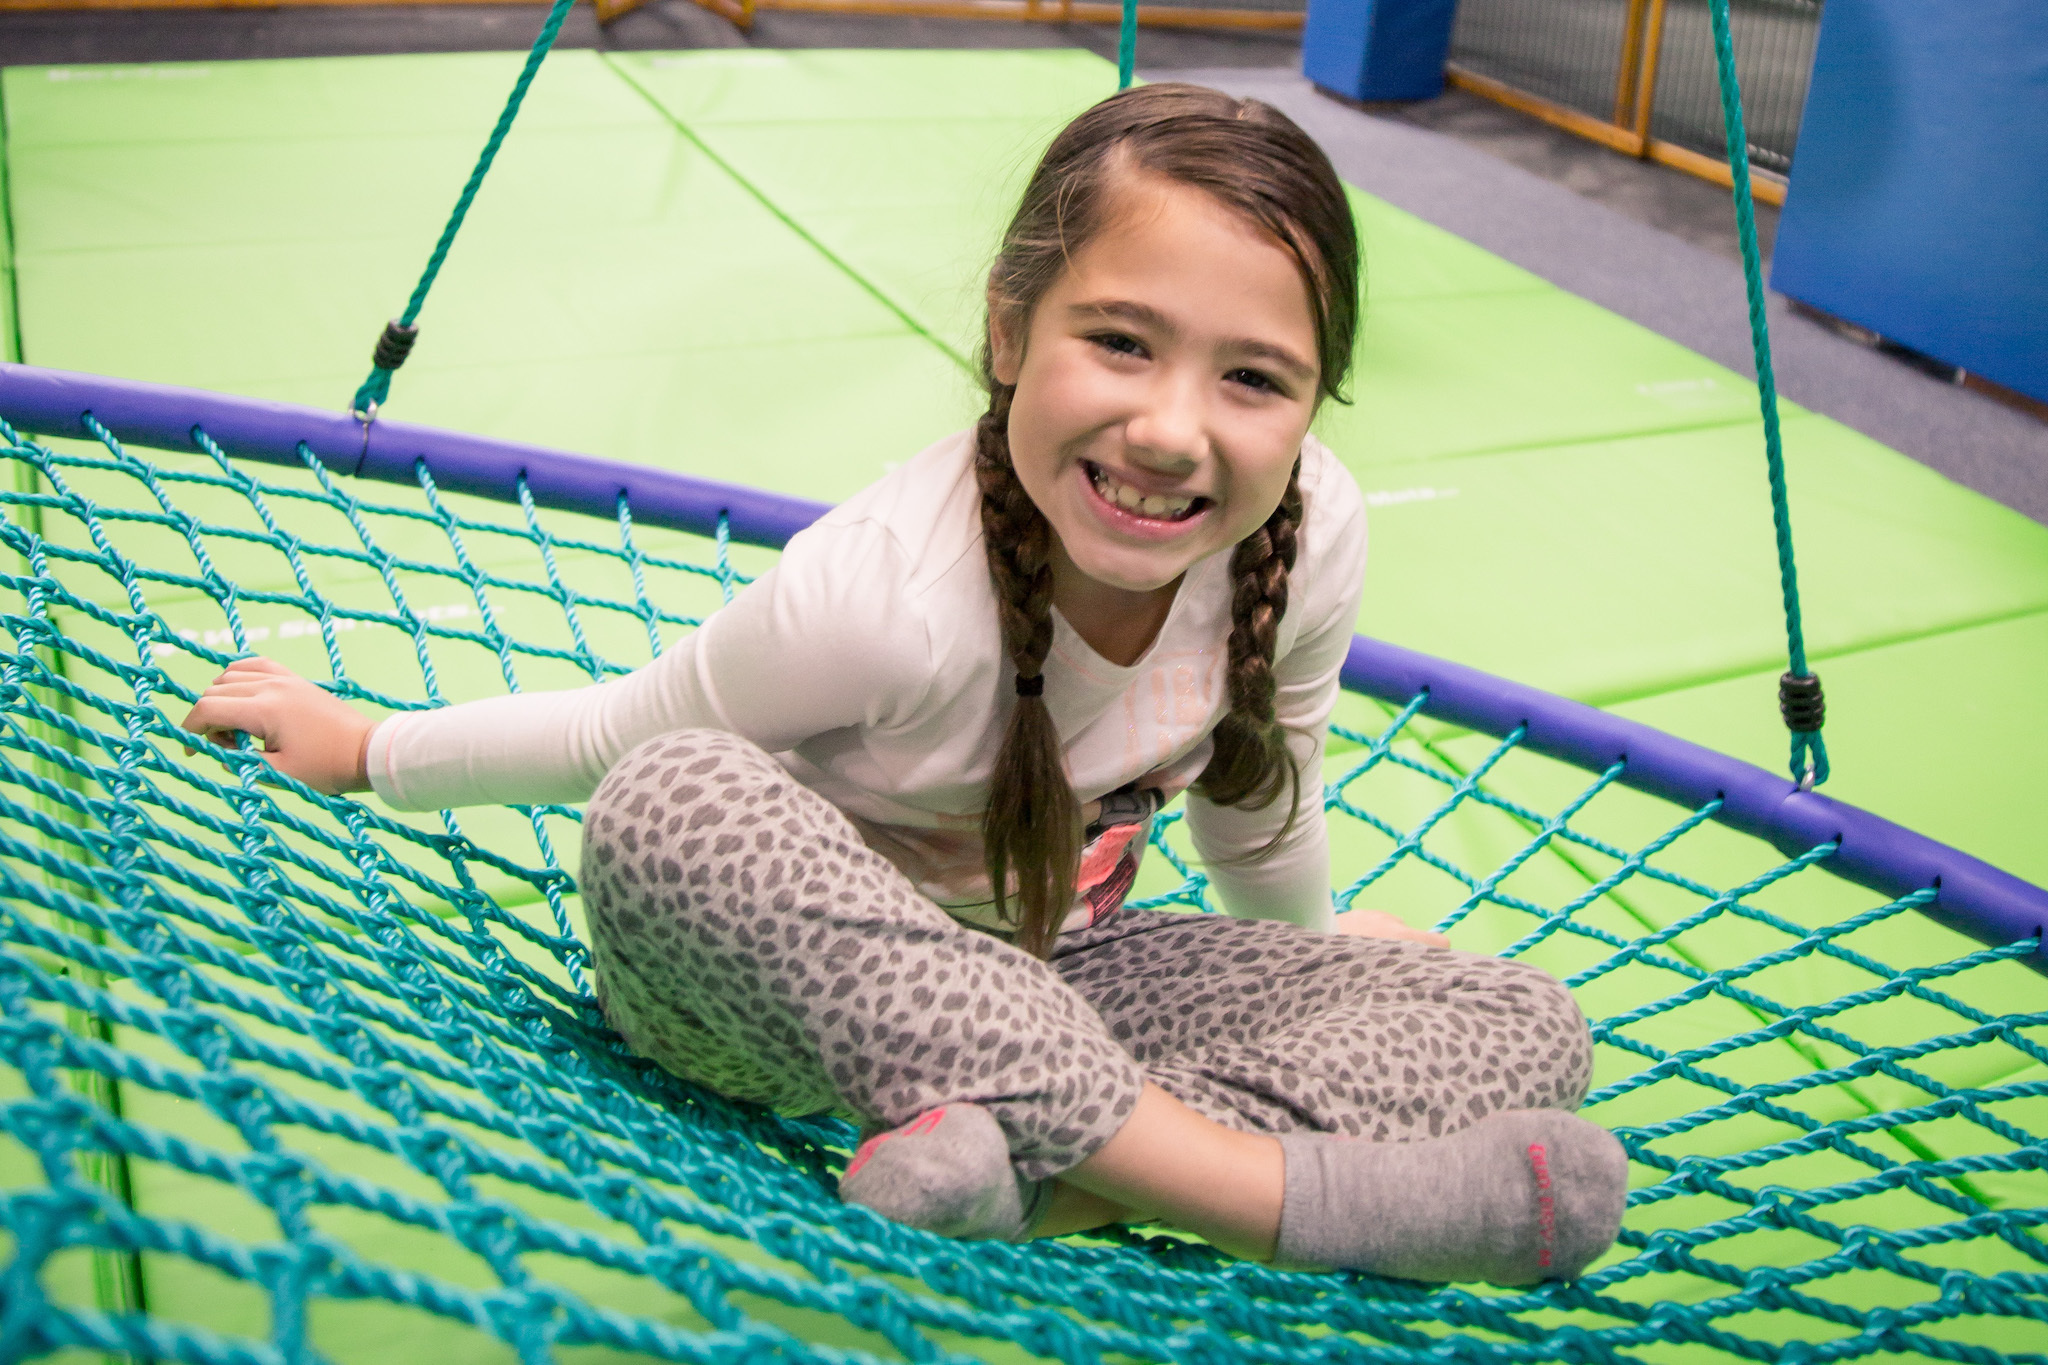 Kids at Play is an indoor play space for little ones in East Falls